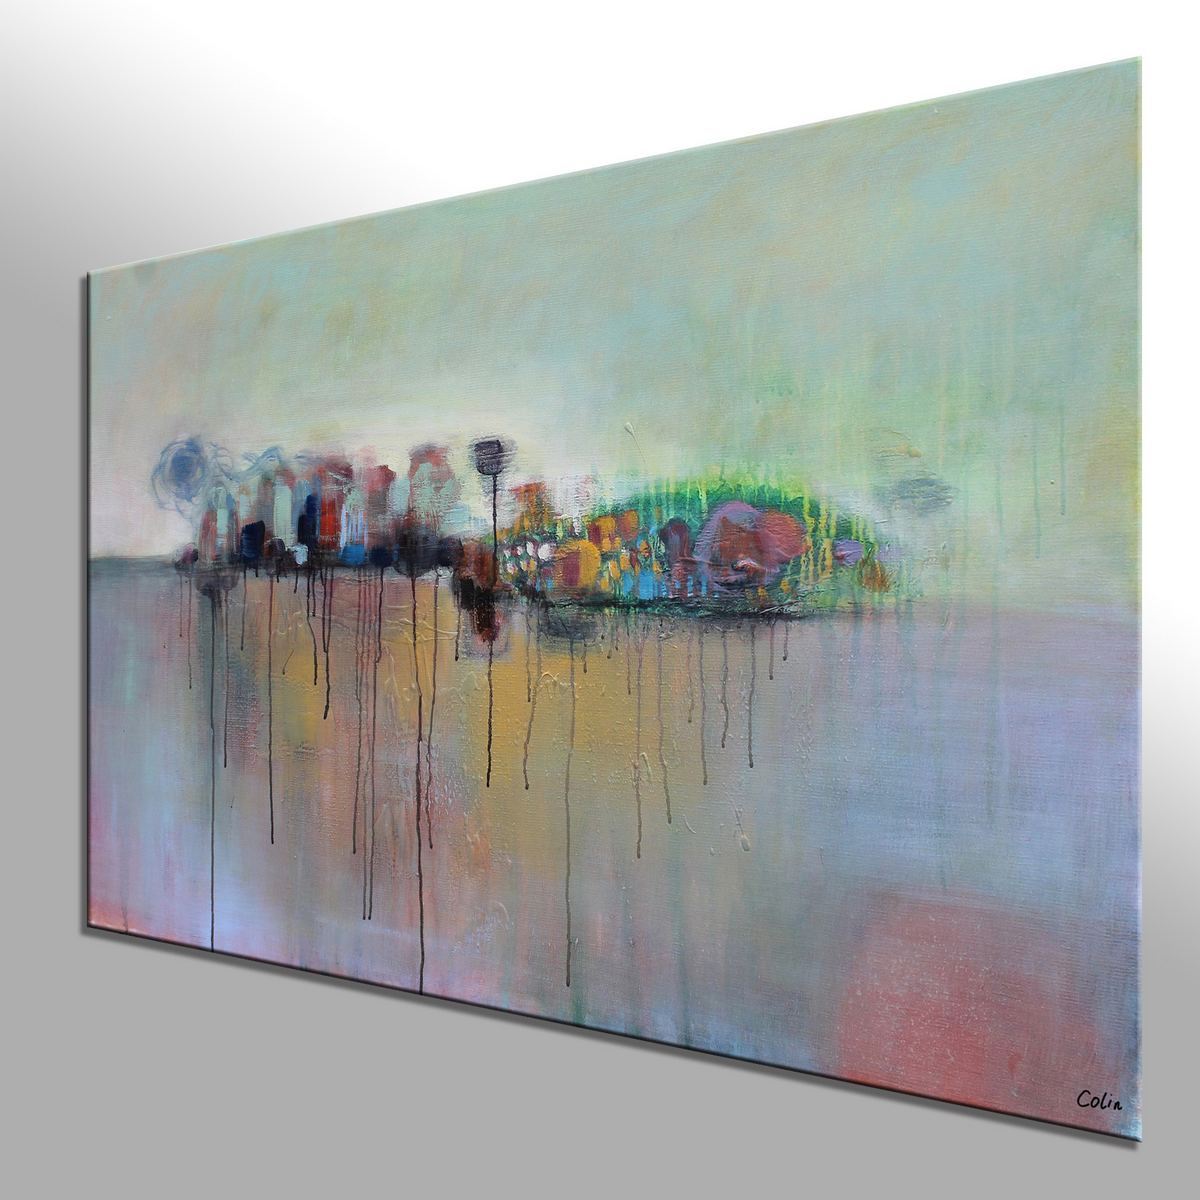 Modern Art, Canvas Art, Wall Painting, Wall Art, Abstract Painting, Bedroom Wall Art, Original Artwork, Canvas Painting, Abstract Art, 559